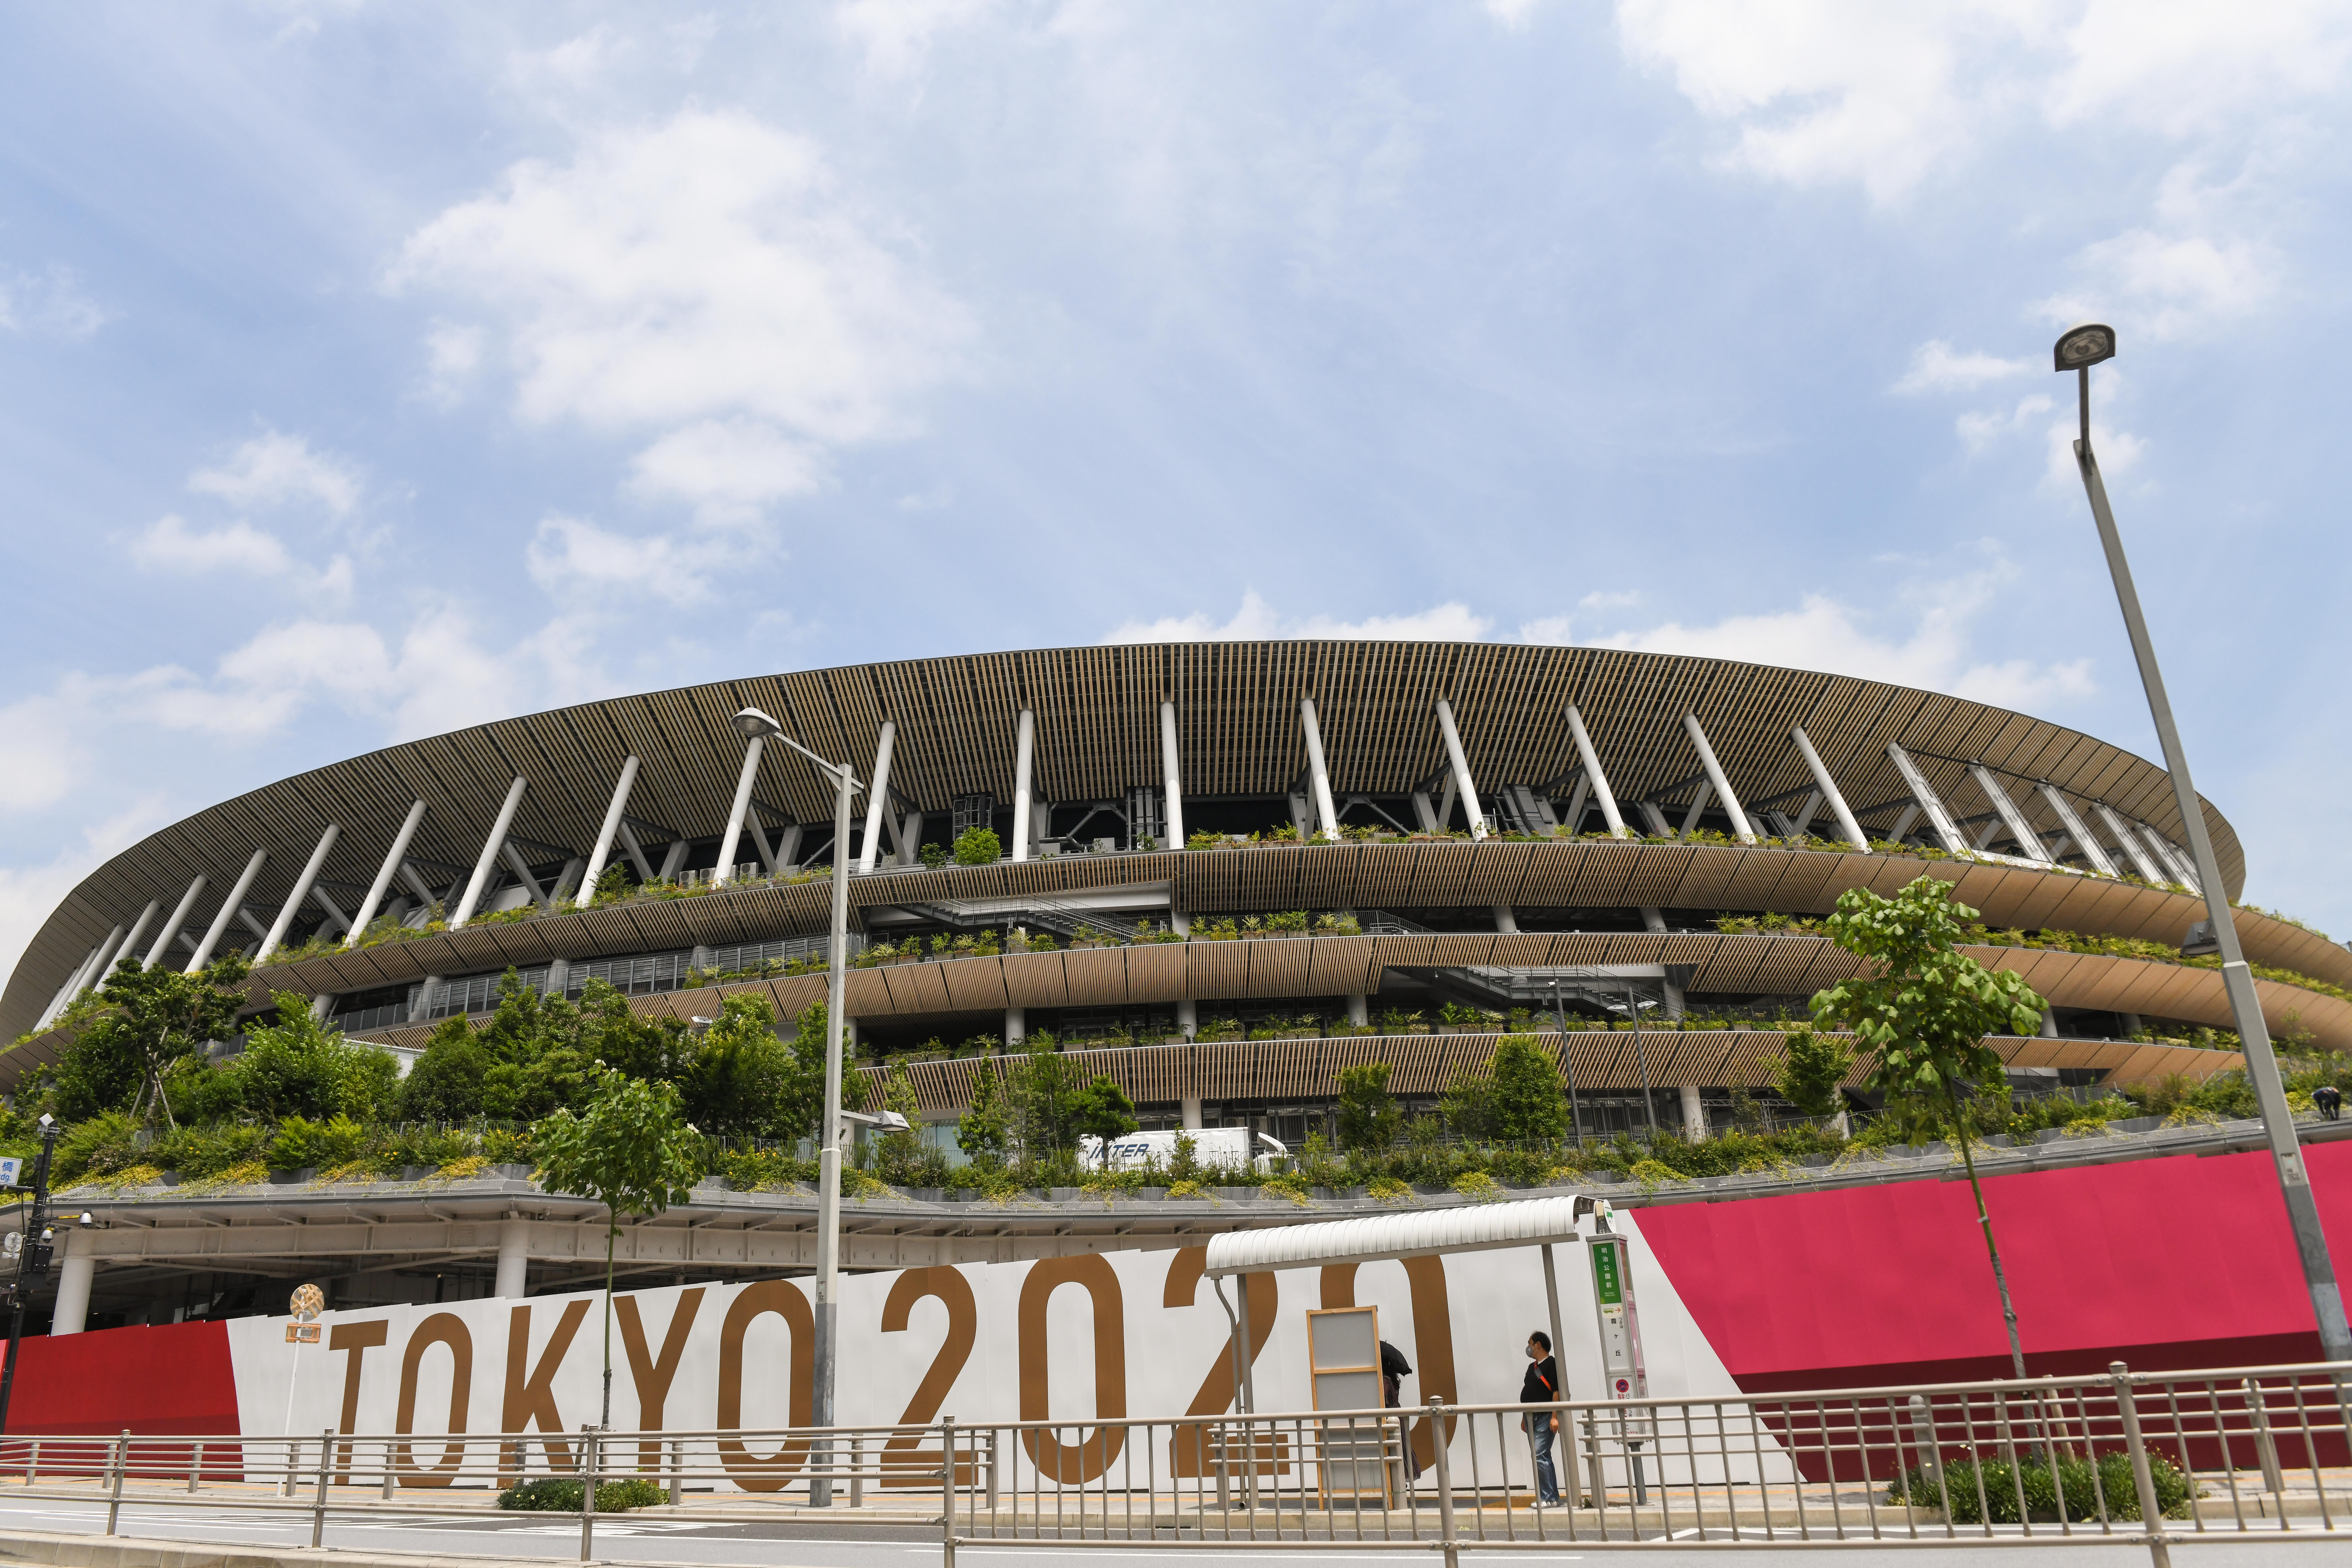 Tokyo Olympics to allow limited spectators at Games - CNET